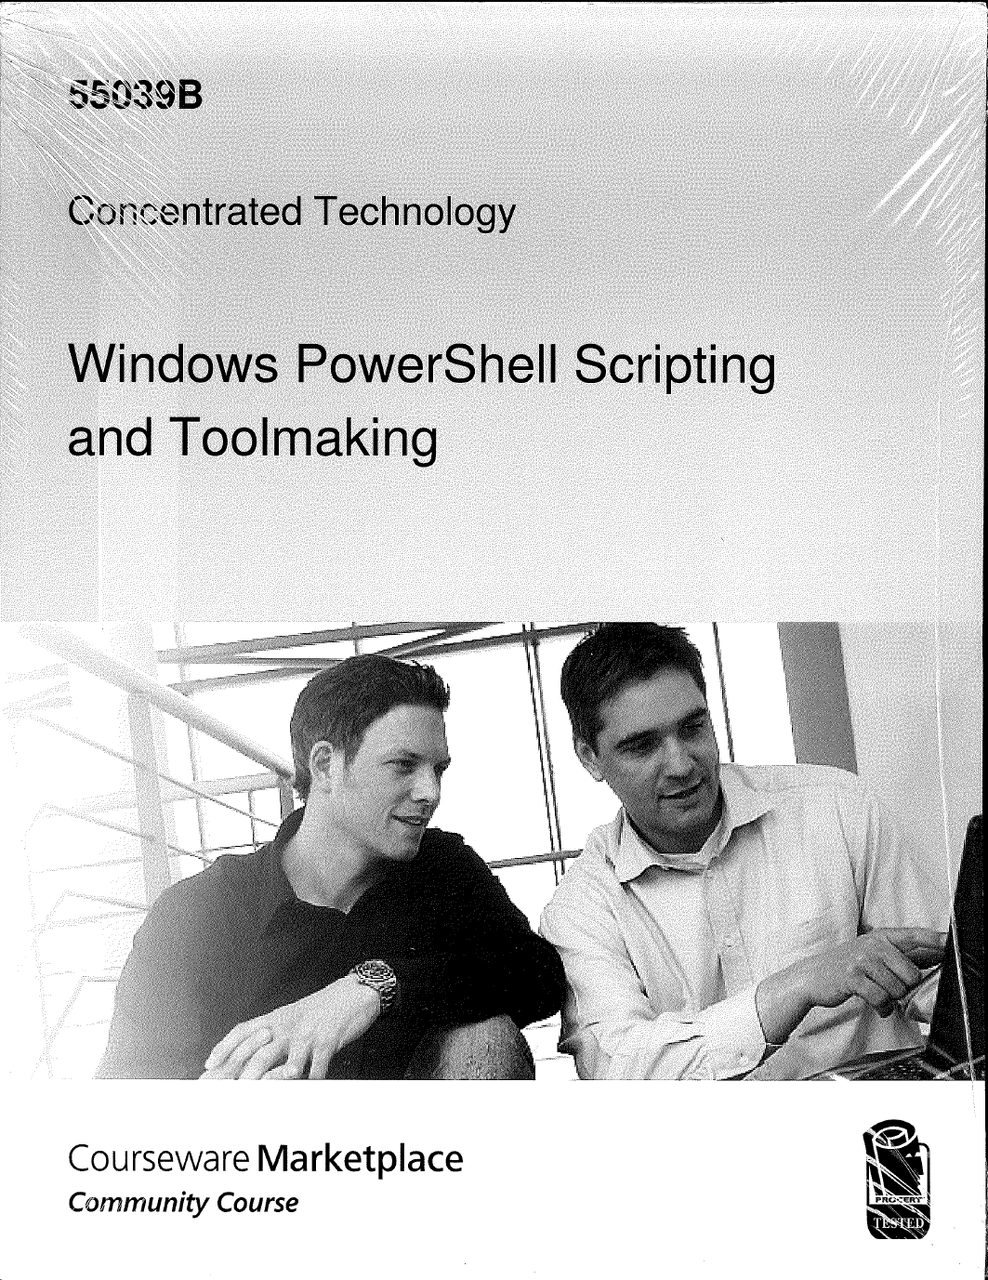 55039B Windows PowerShell Scripting and Toolmaking